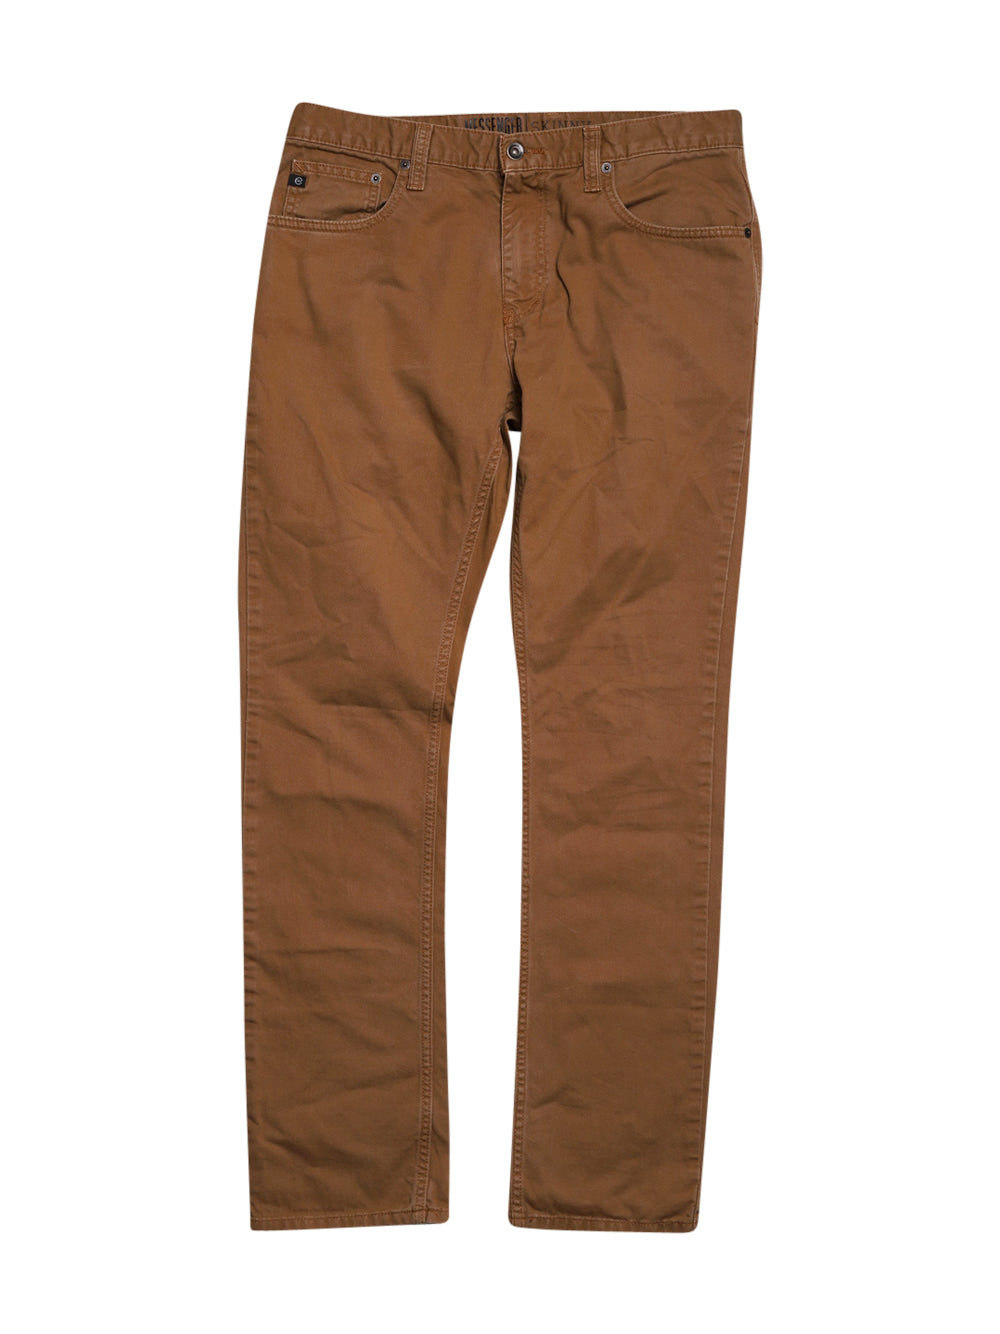 Front photo of Preloved freeworld Beige Man's trousers - size 36/S